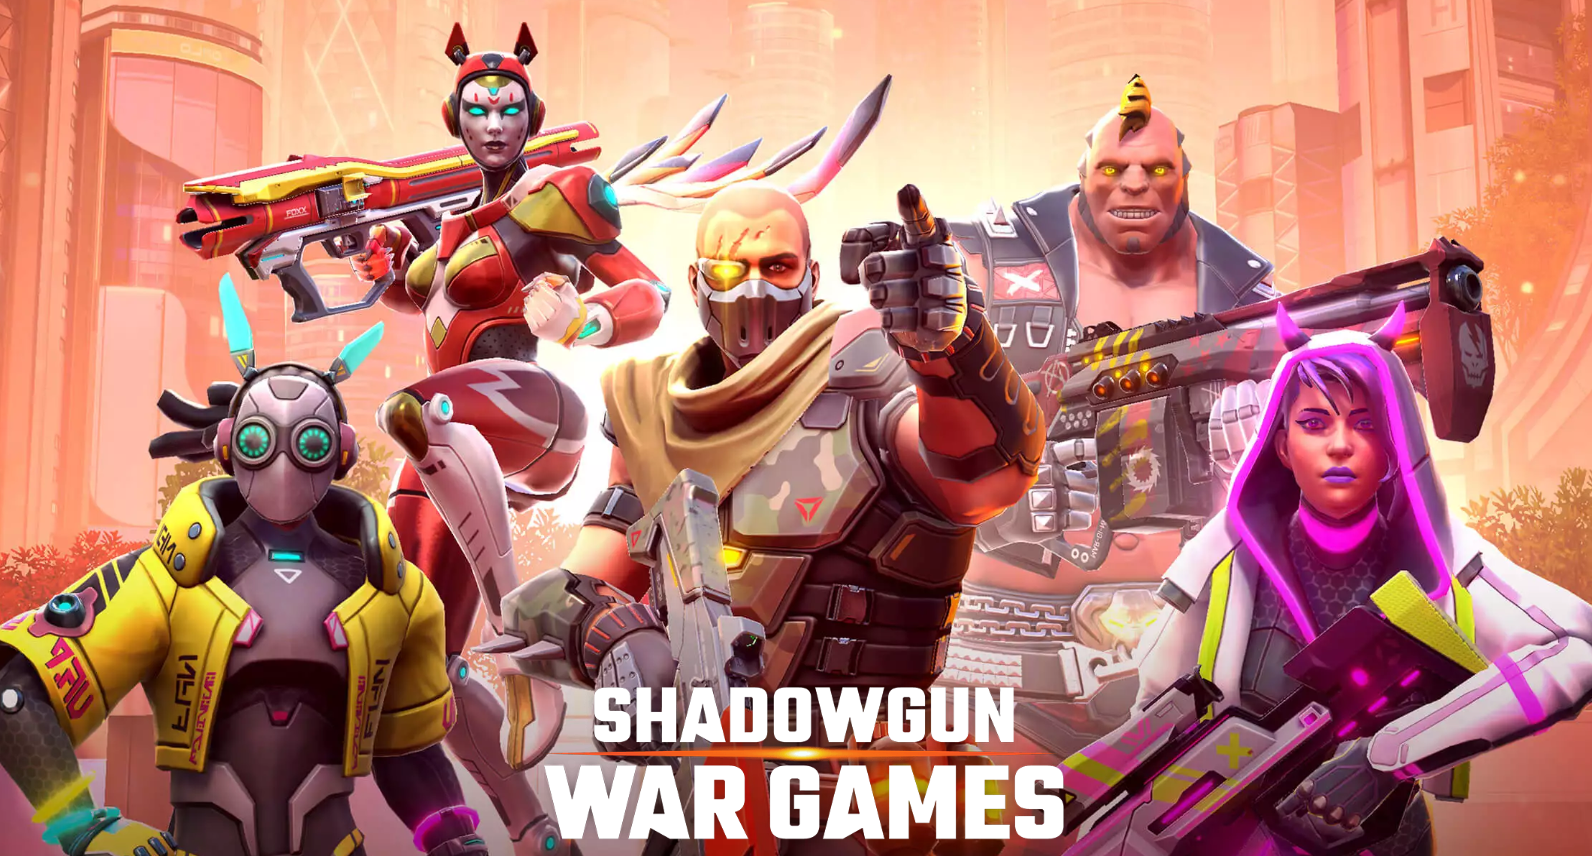 Shadowgun War Games: First Impressions - The Mobile Overwatch? 24